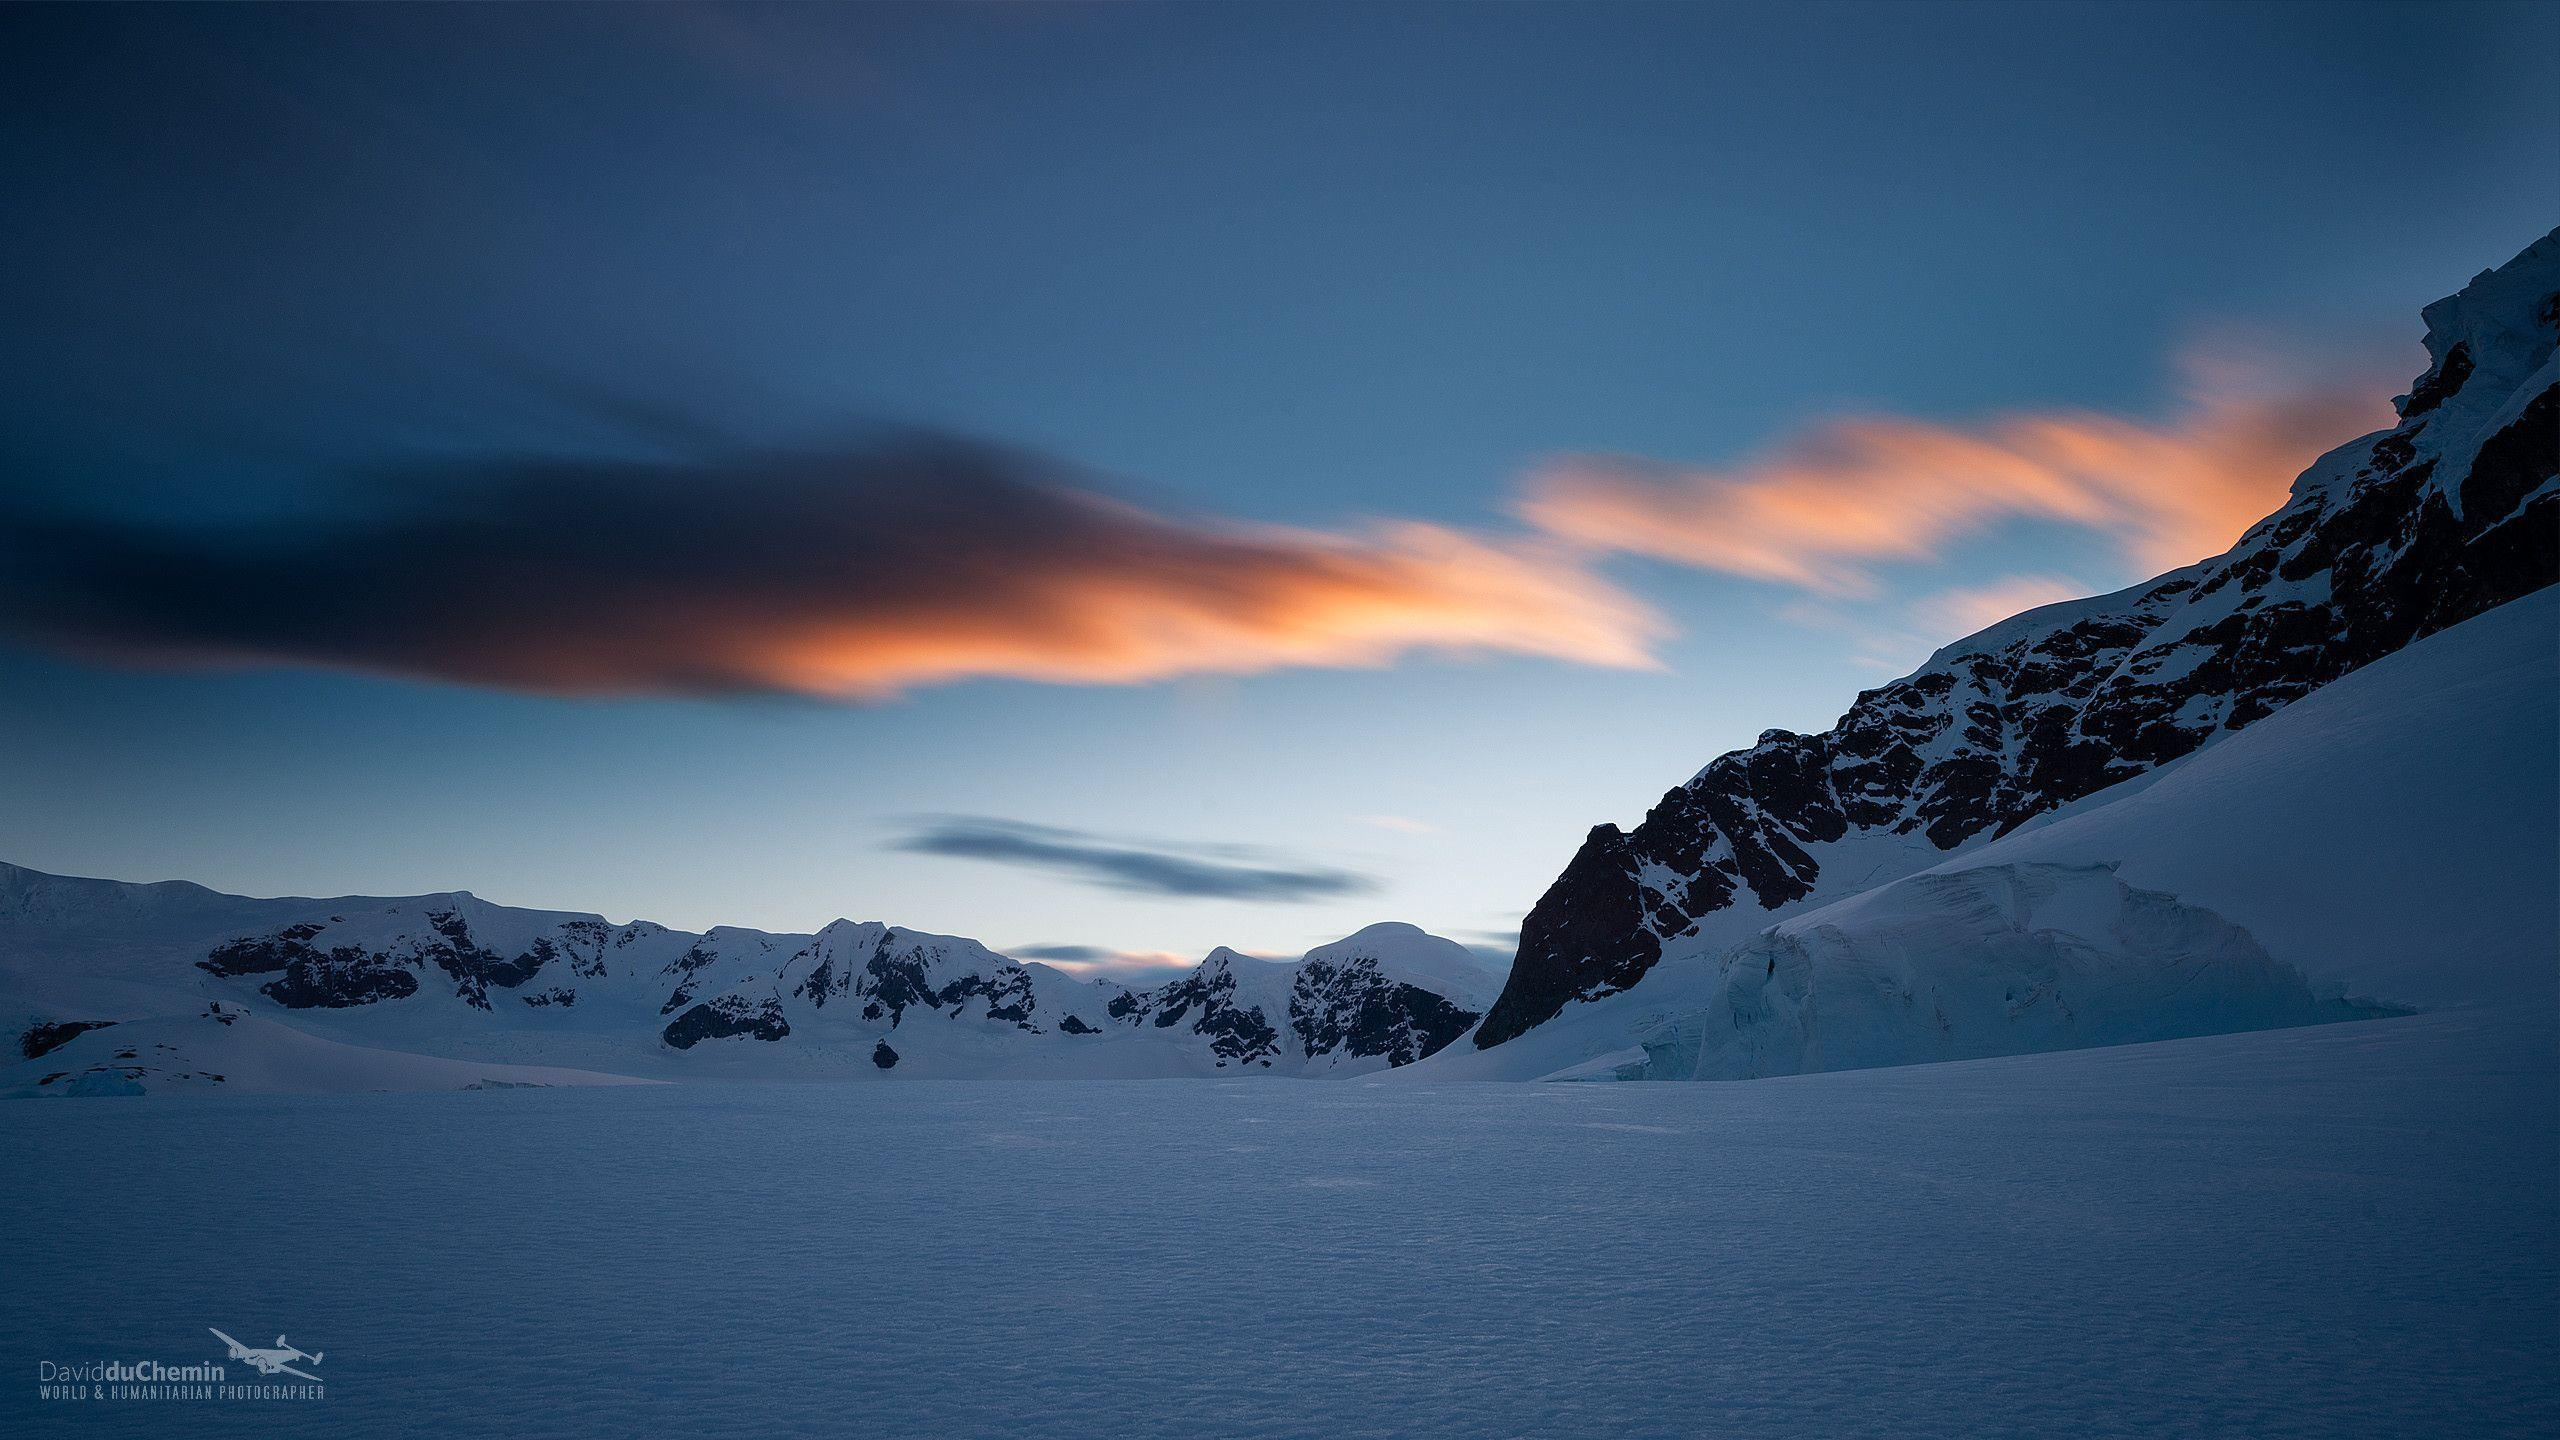 antarctica and clouds wallpaper - photo #11